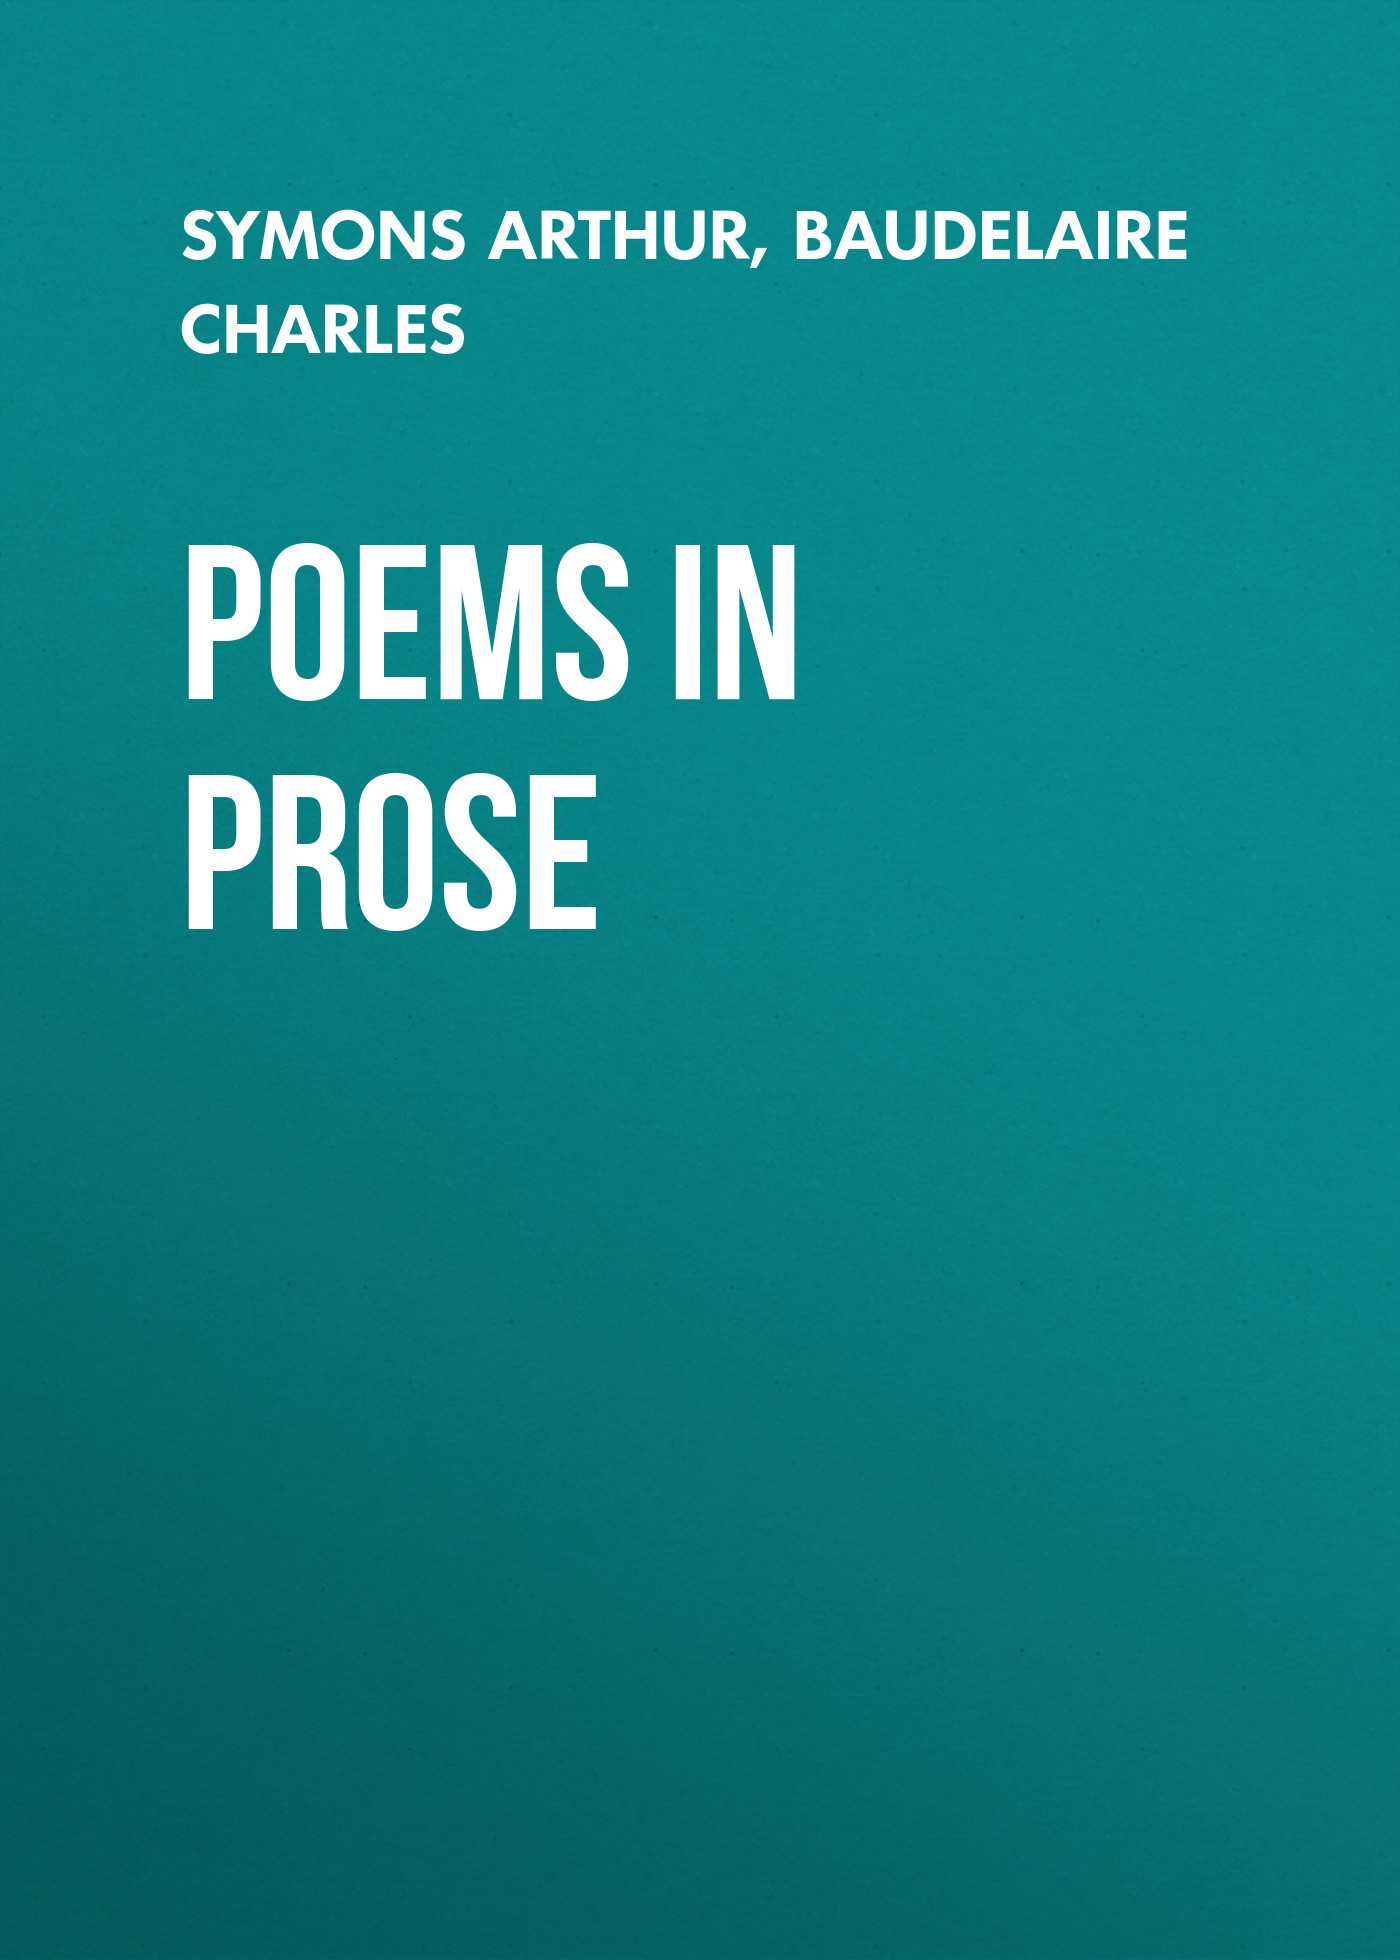 Baudelaire Charles Poems in Prose baudelaire charles the poems and prose poems of charles baudelaire